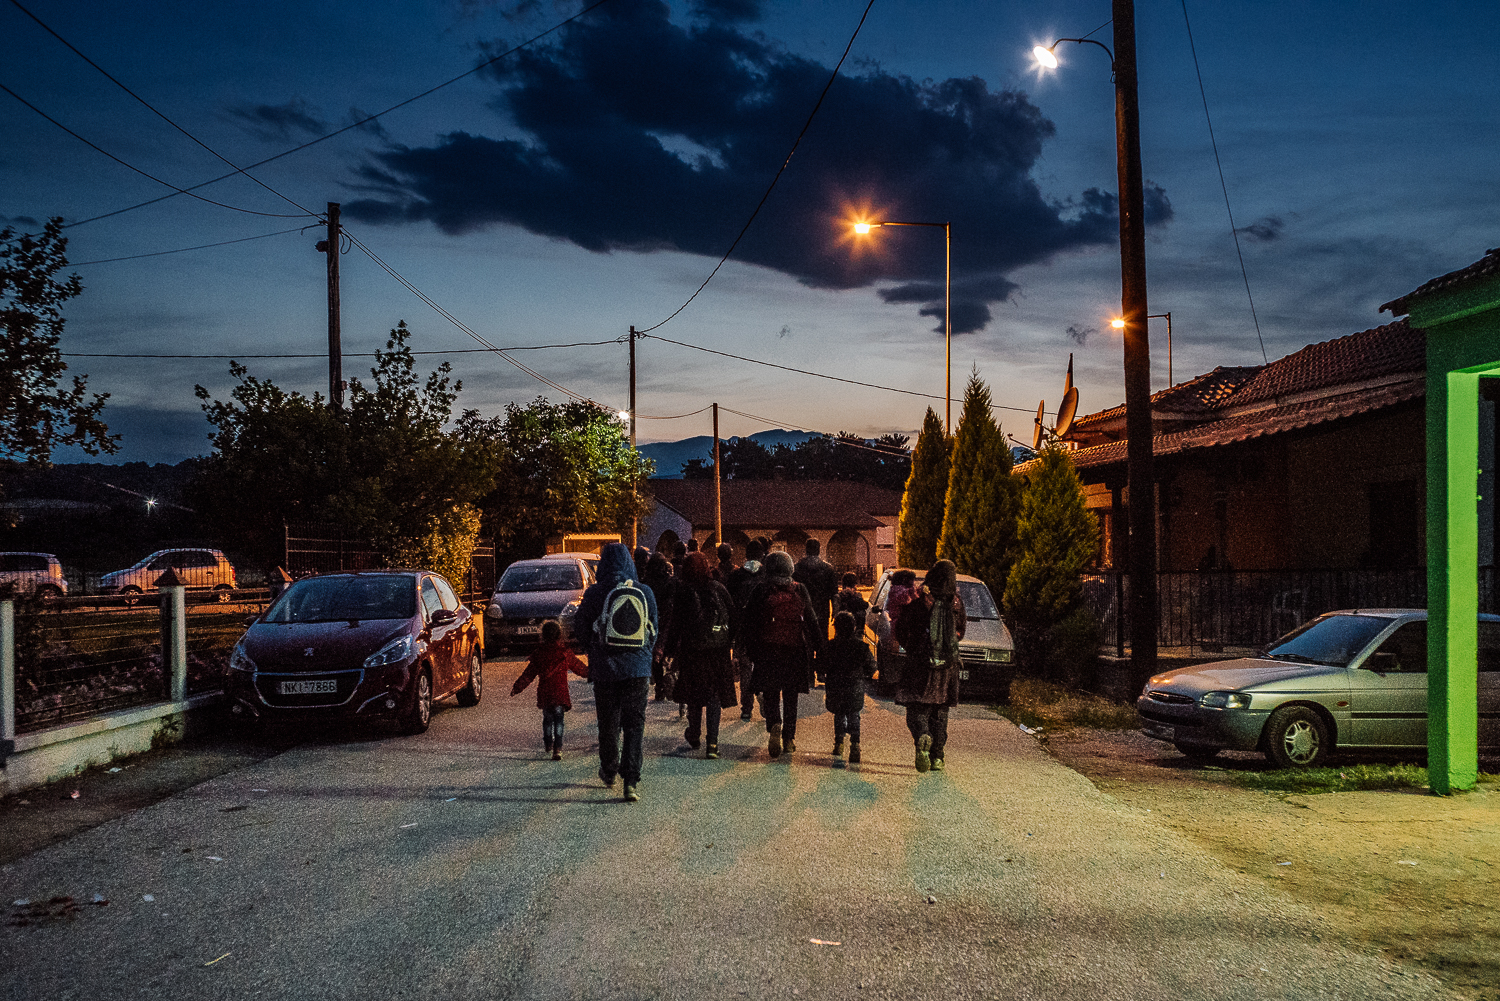 A family of asylum seekers making one last attempt to cross the border into Macedonia in the cover of darkness before being forced to relocate to official camps. Idomeni, Greece, 2016